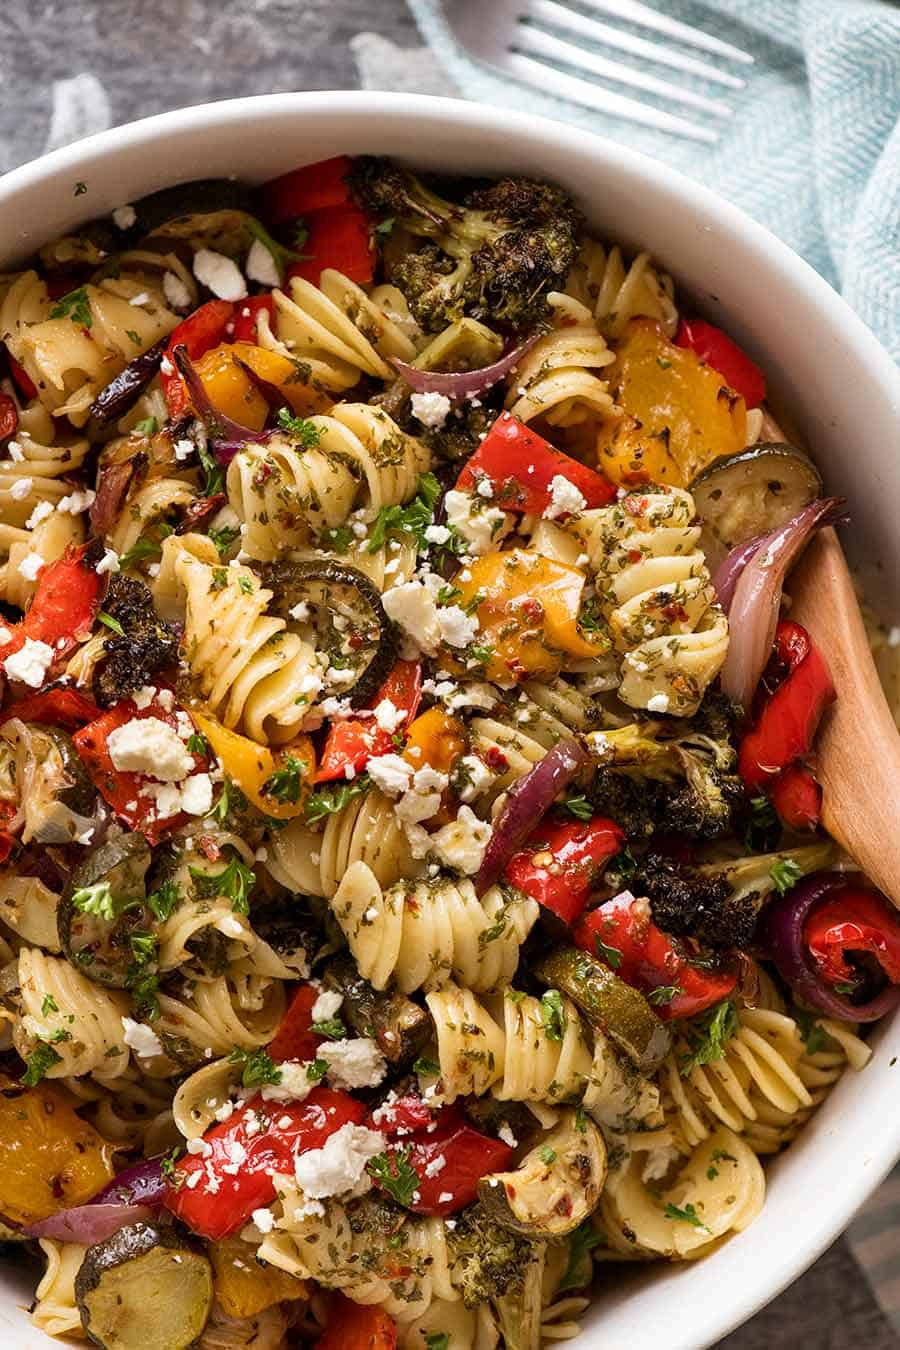 Overhead photo of marinated Vegetable Pasta Salad